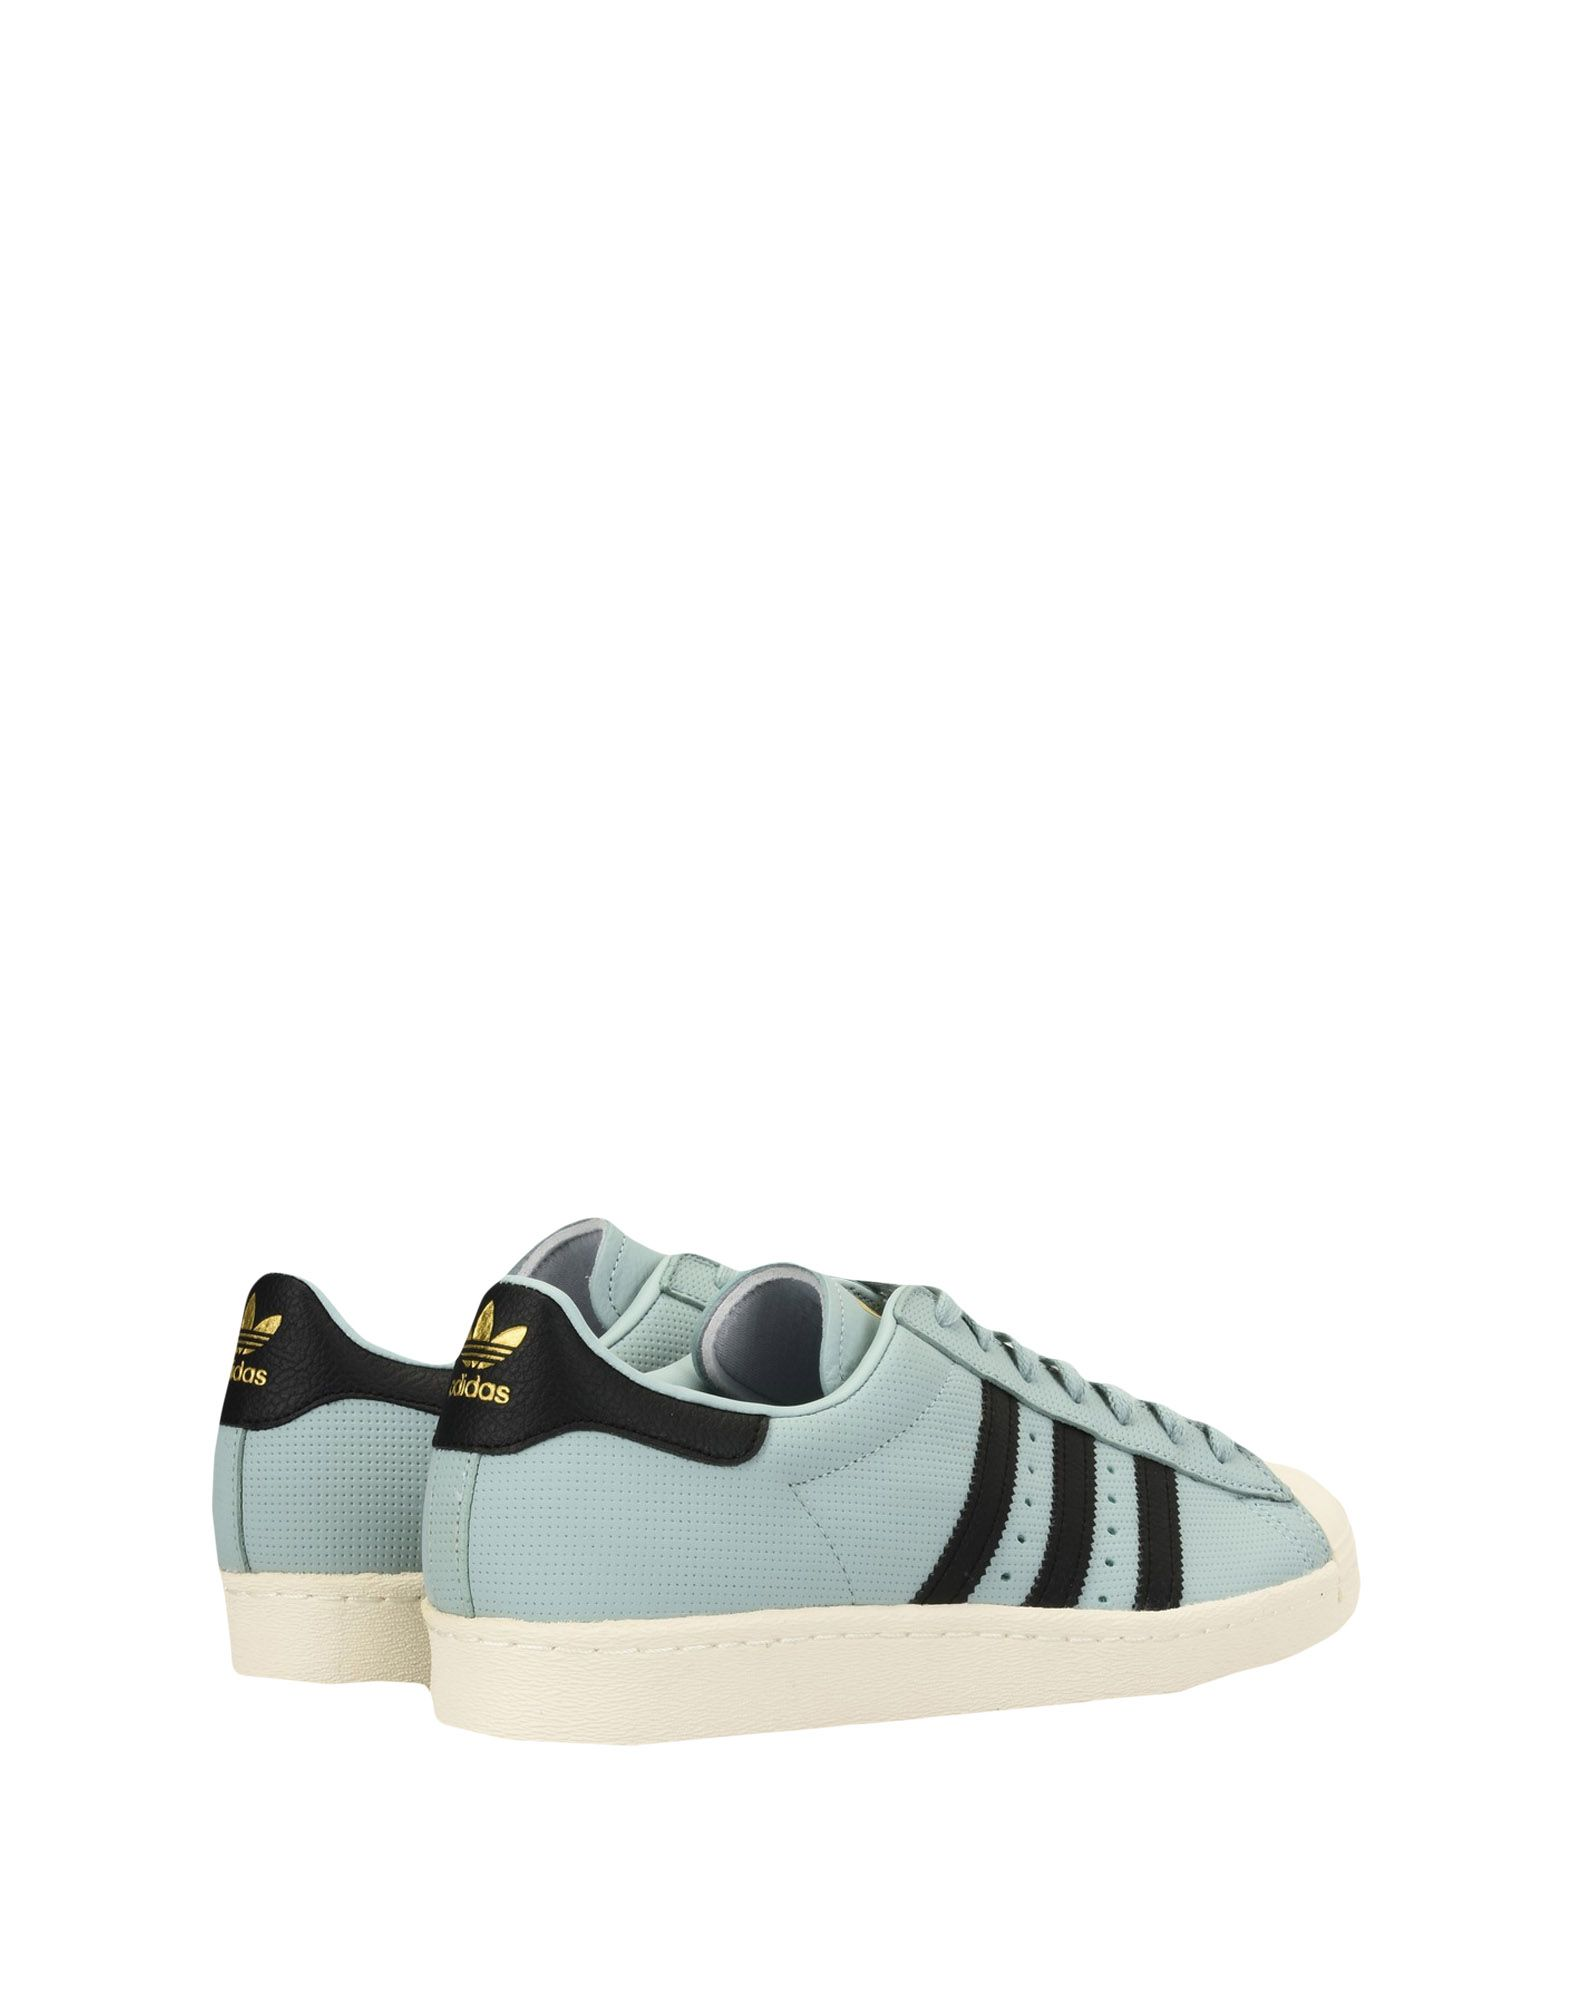 Sneakers Adidas Originals Superstar Uomo 80S - Uomo Superstar - 11325572KB b69b4e